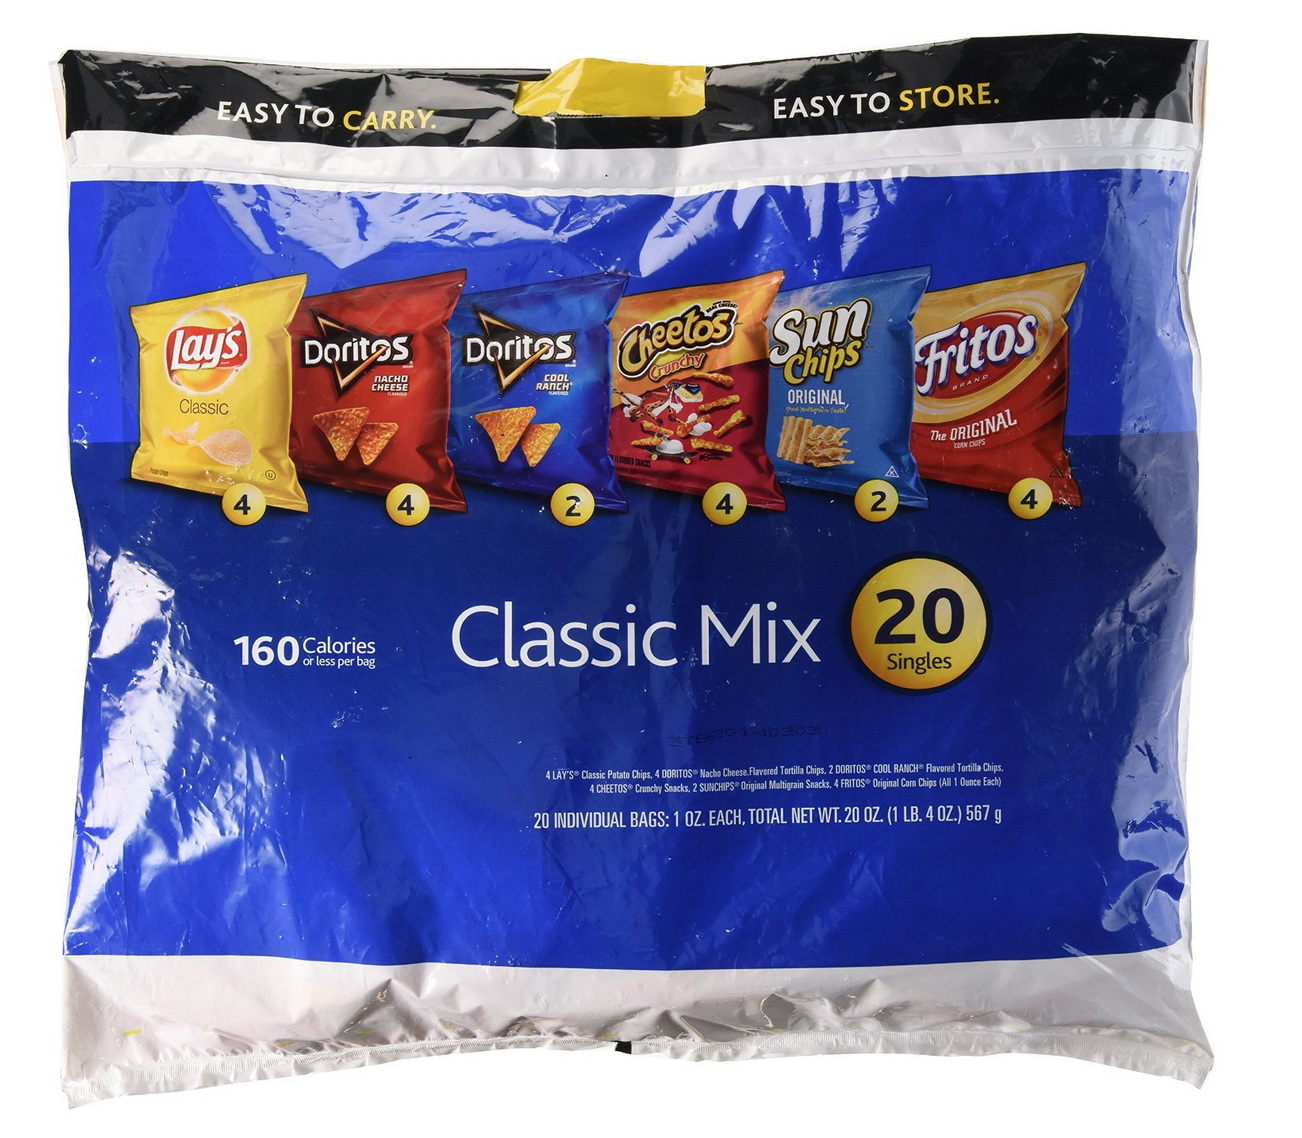 20-Ct. Frito-Lay Chips Classic Multipack Only $5.38 – Just 27¢ Per Bag!